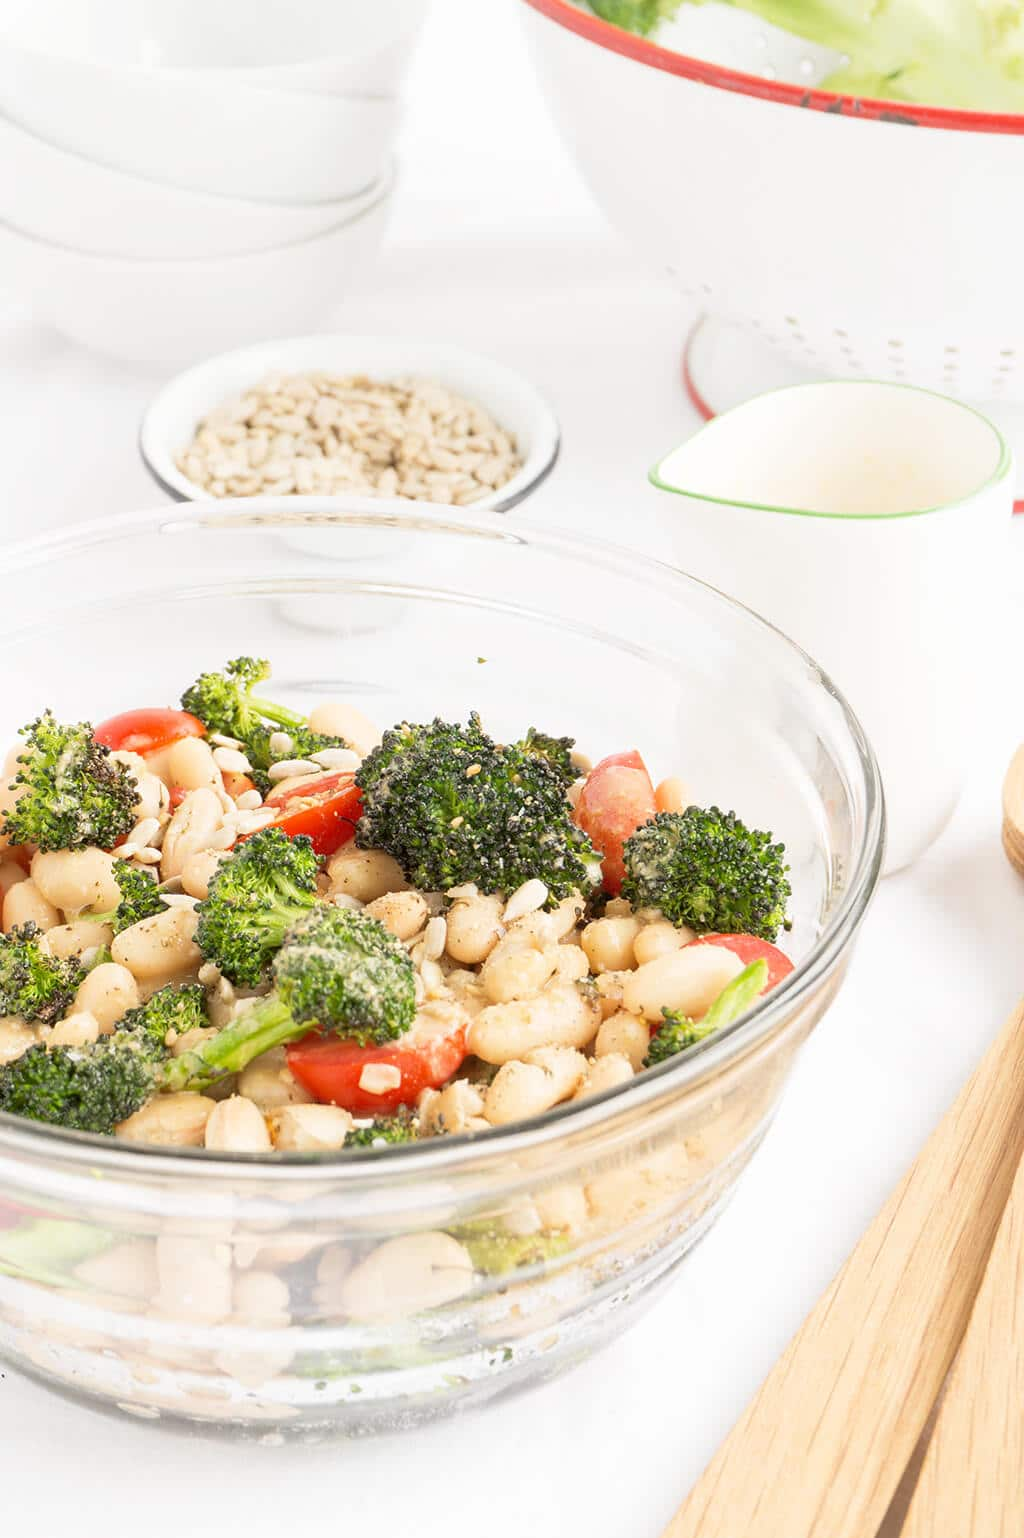 This Roasted Broccoli Salad can be served warm or cold. Tomatoes, cannellini beans, toasted sunflower seeds + Sesame-Ginger Dressing - it's healthy & quick! HEALTHY   VEGETARIAN   BROCCOLI   Recipe at OatandSesame.com